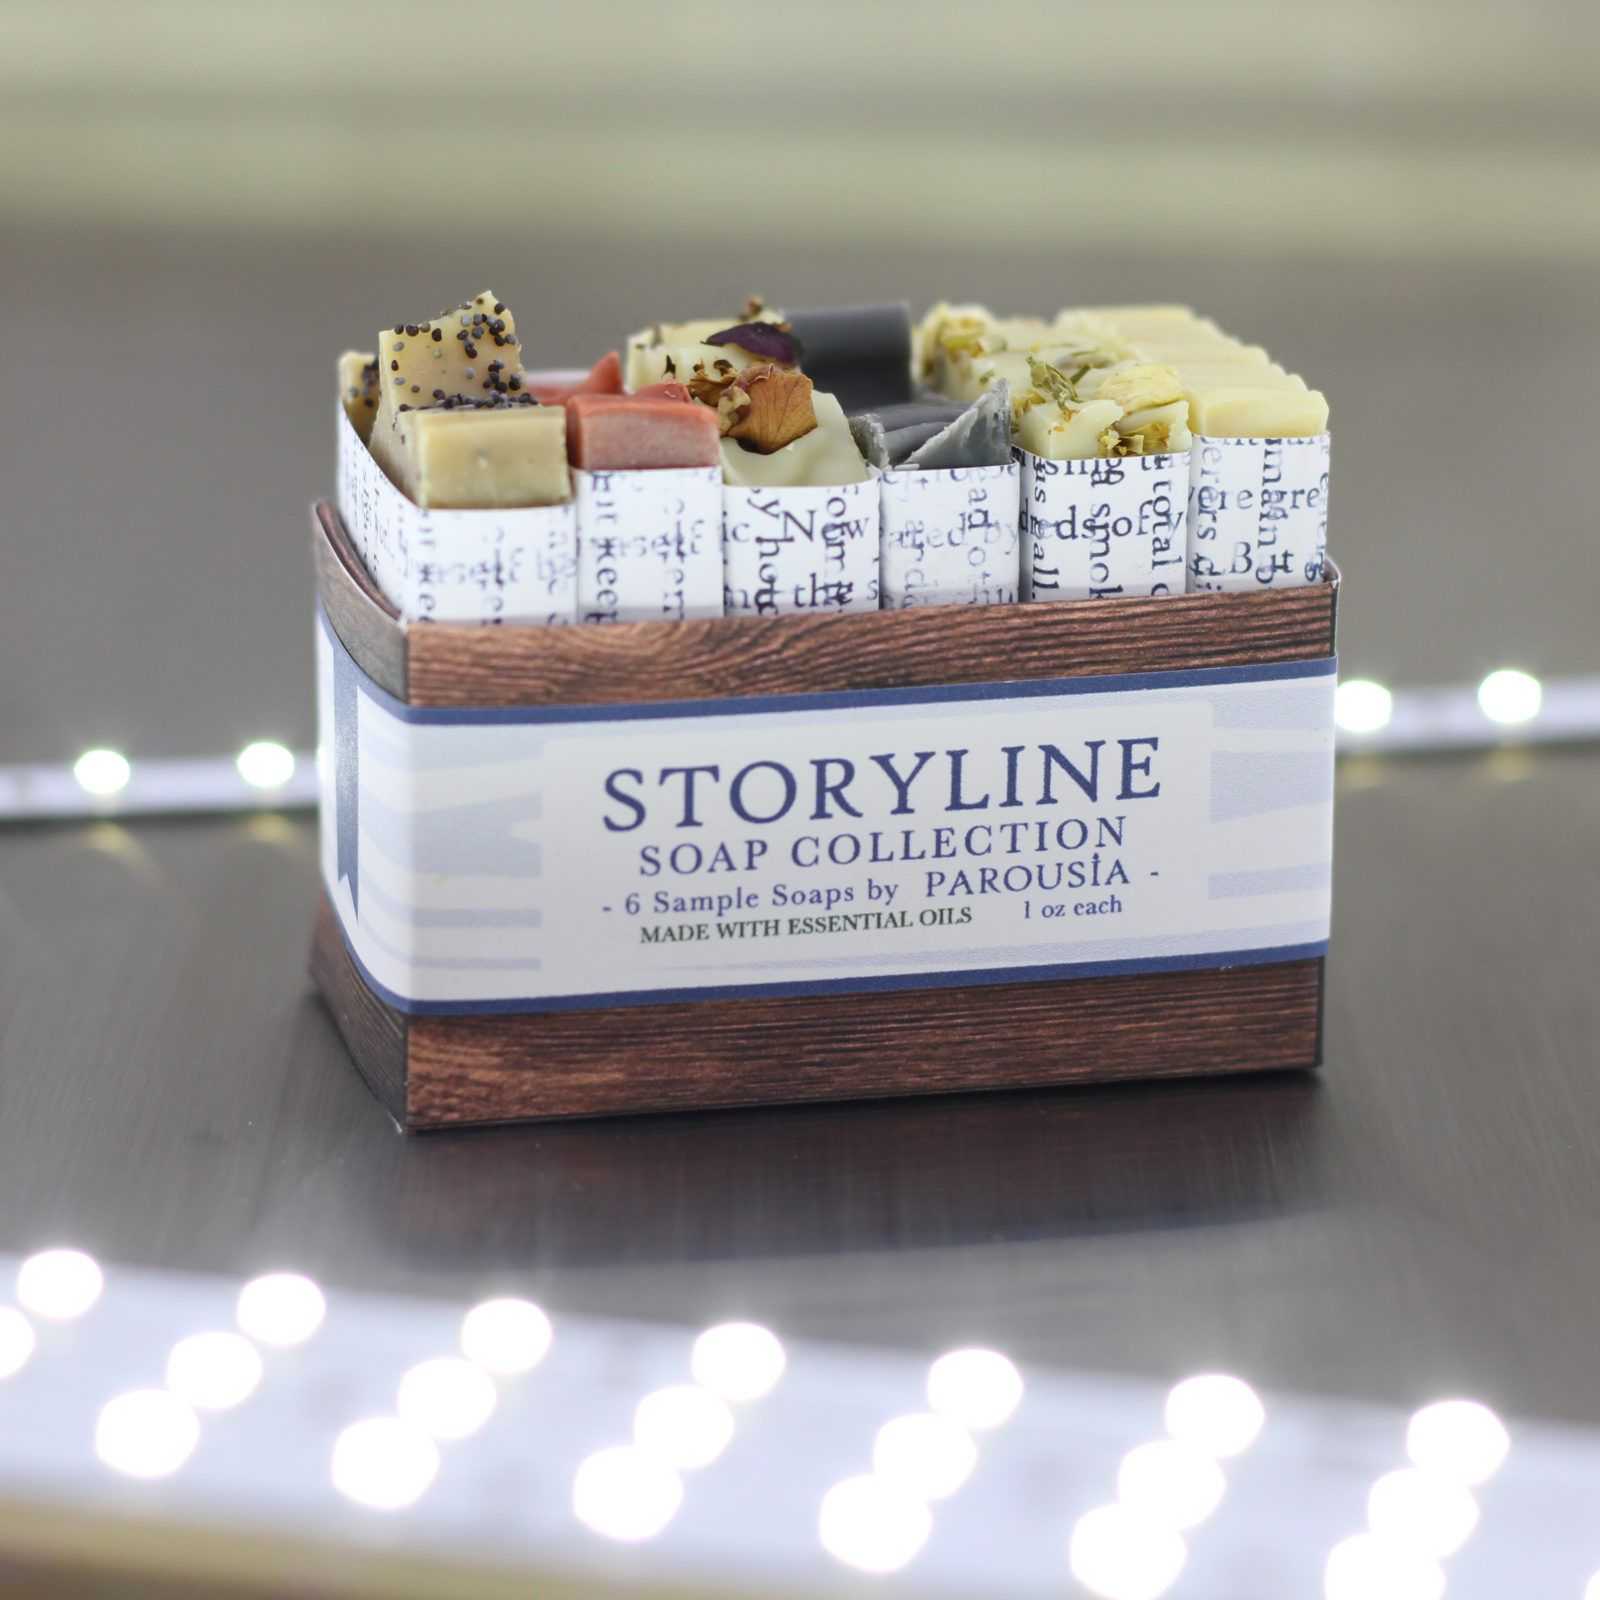 Storyline Soap Sampler all natural by parousia and old